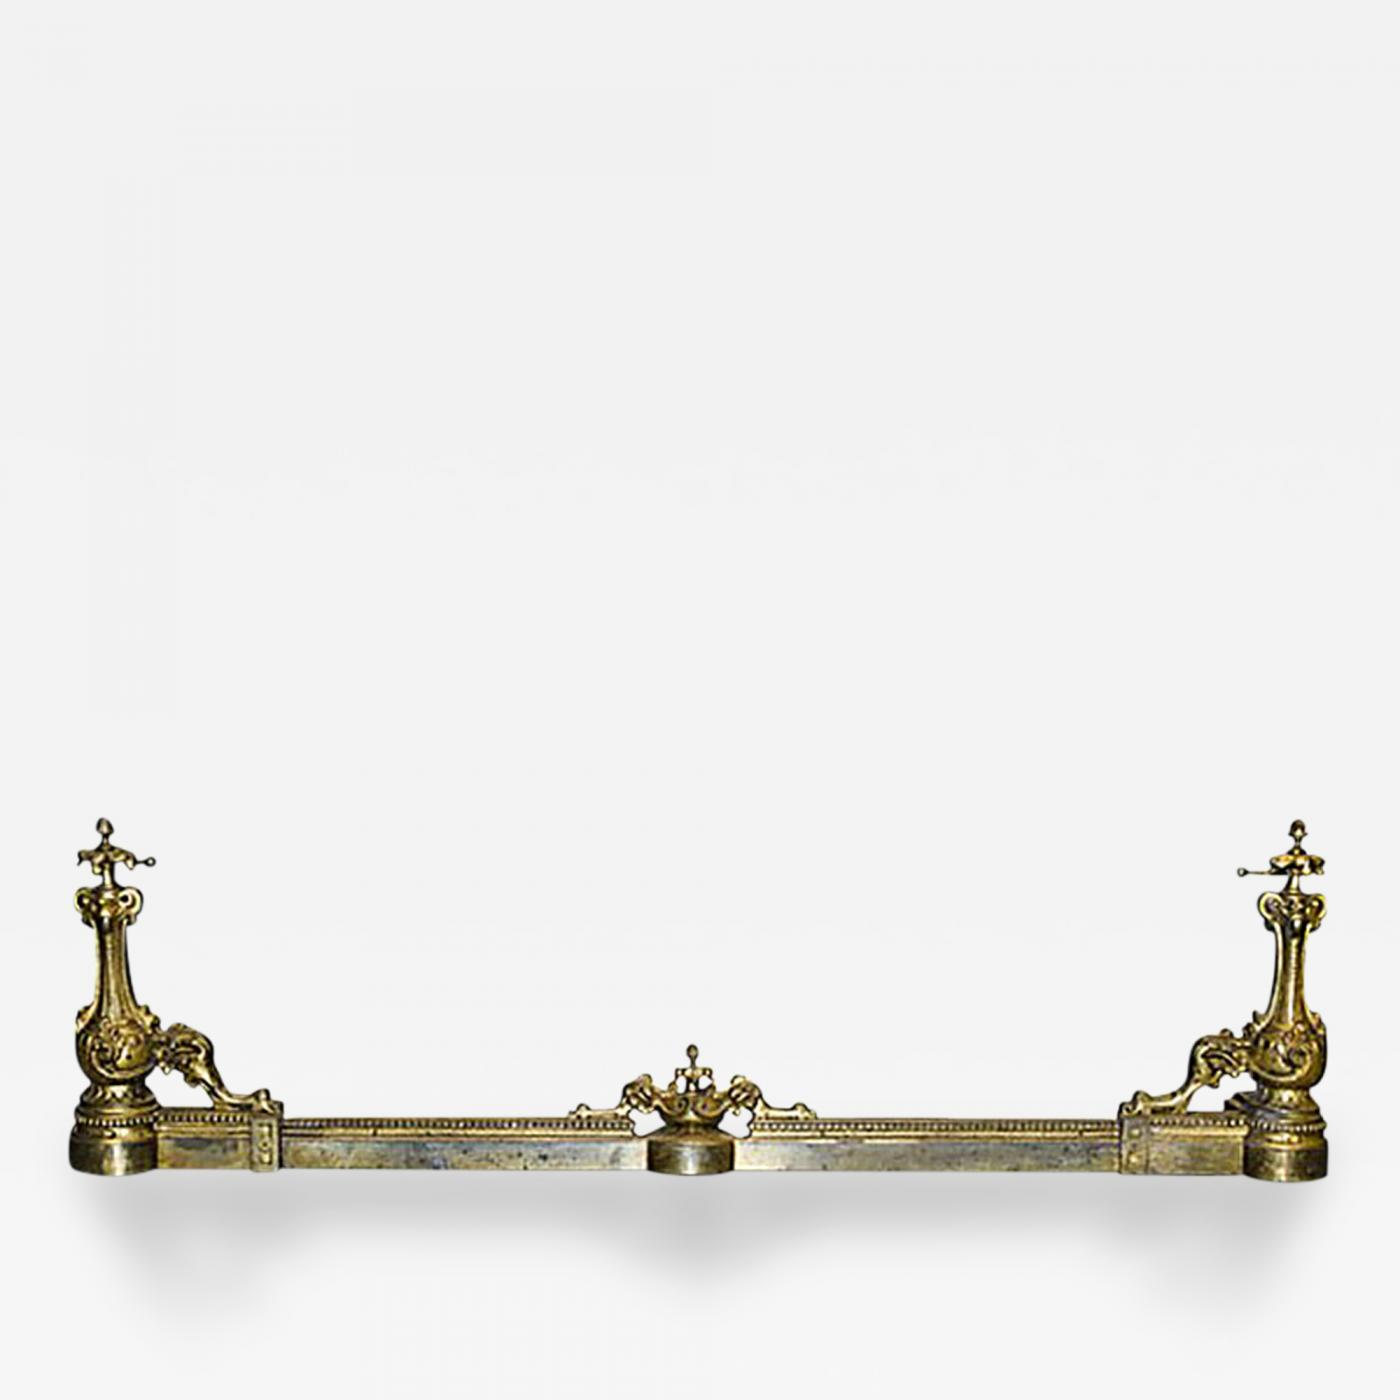 Gilt Brass Fireplace Fender In The Rococo Revival Louis Xvi Style